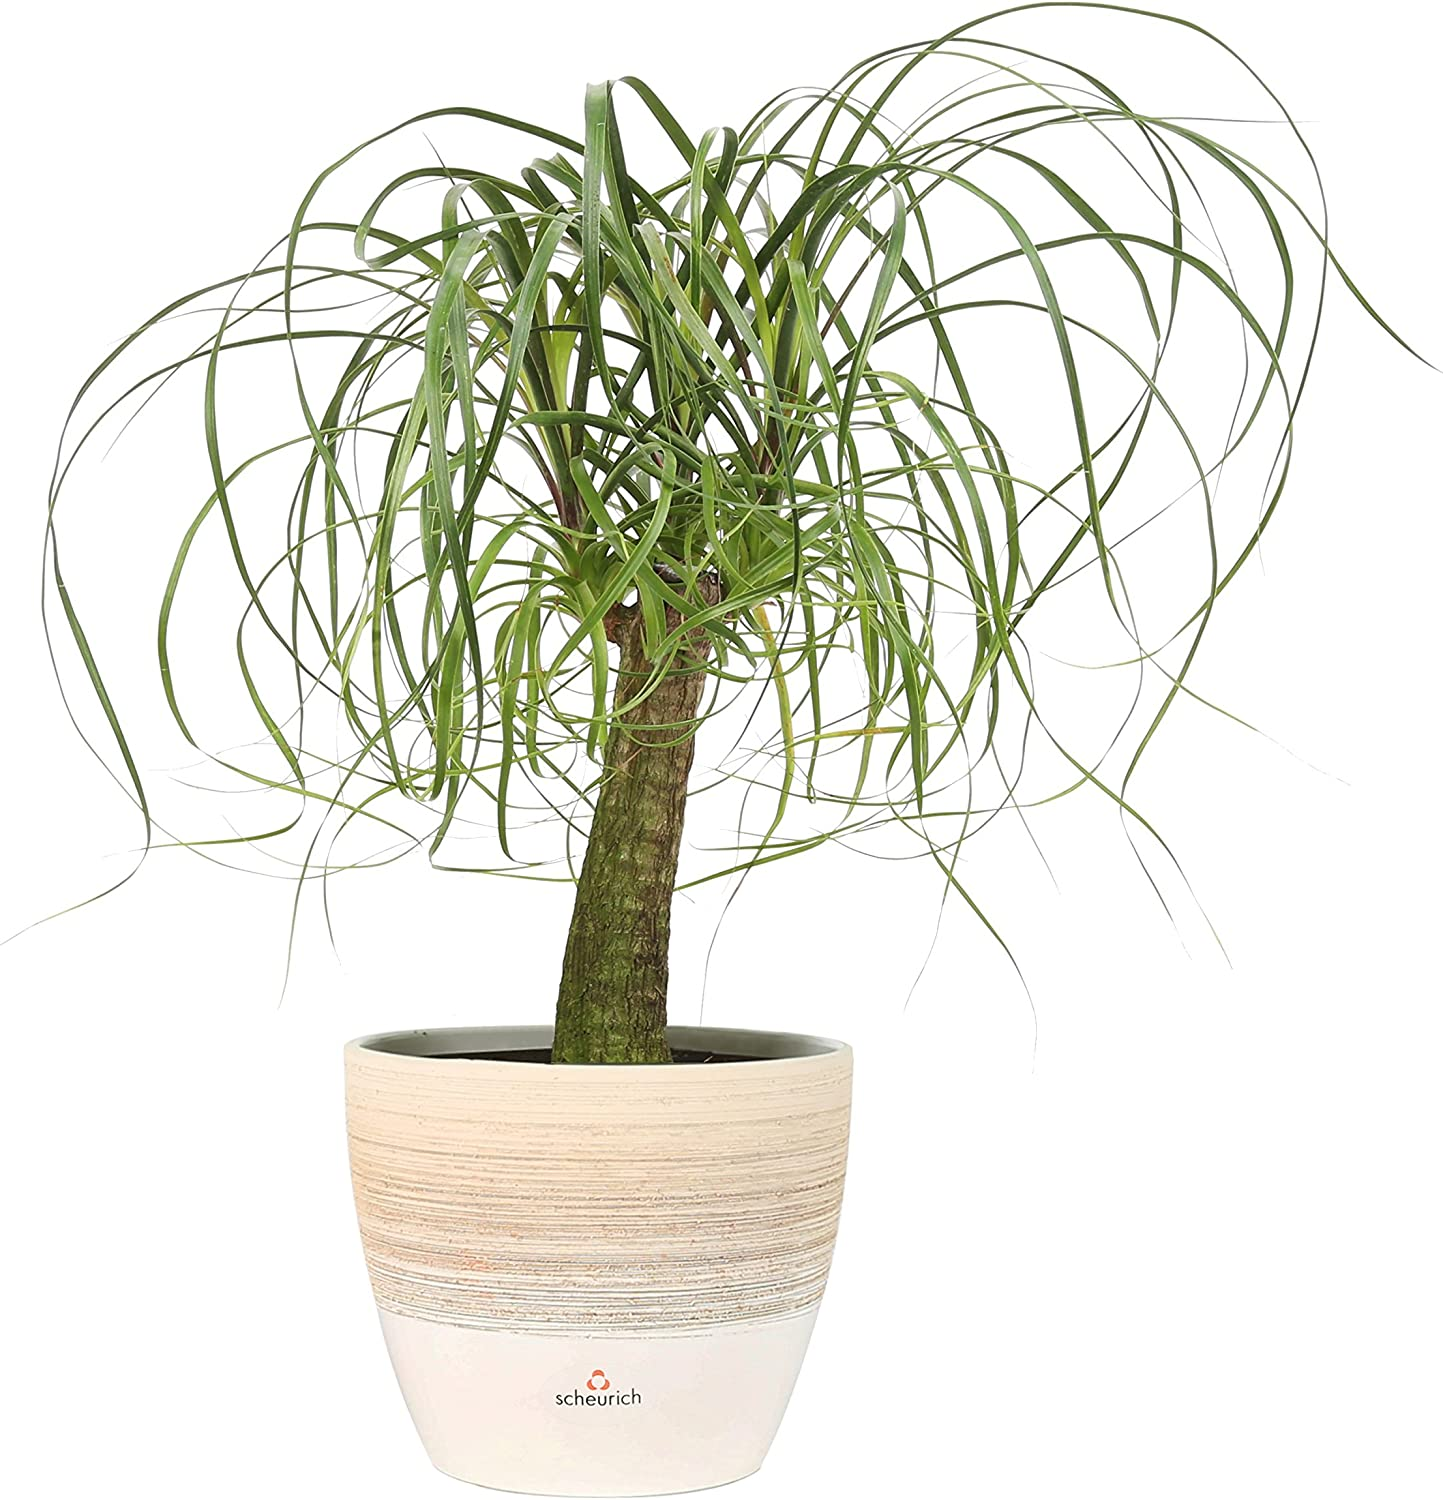 Amazon Com Costa Farms Ponytail Palm Bonsai Live Indoor Plant 15 To 20 Inches Tall Ships In Scheurich Ceramic Planter Fresh From Our Farm Excellent Gift Or Home Decor Garden Outdoor